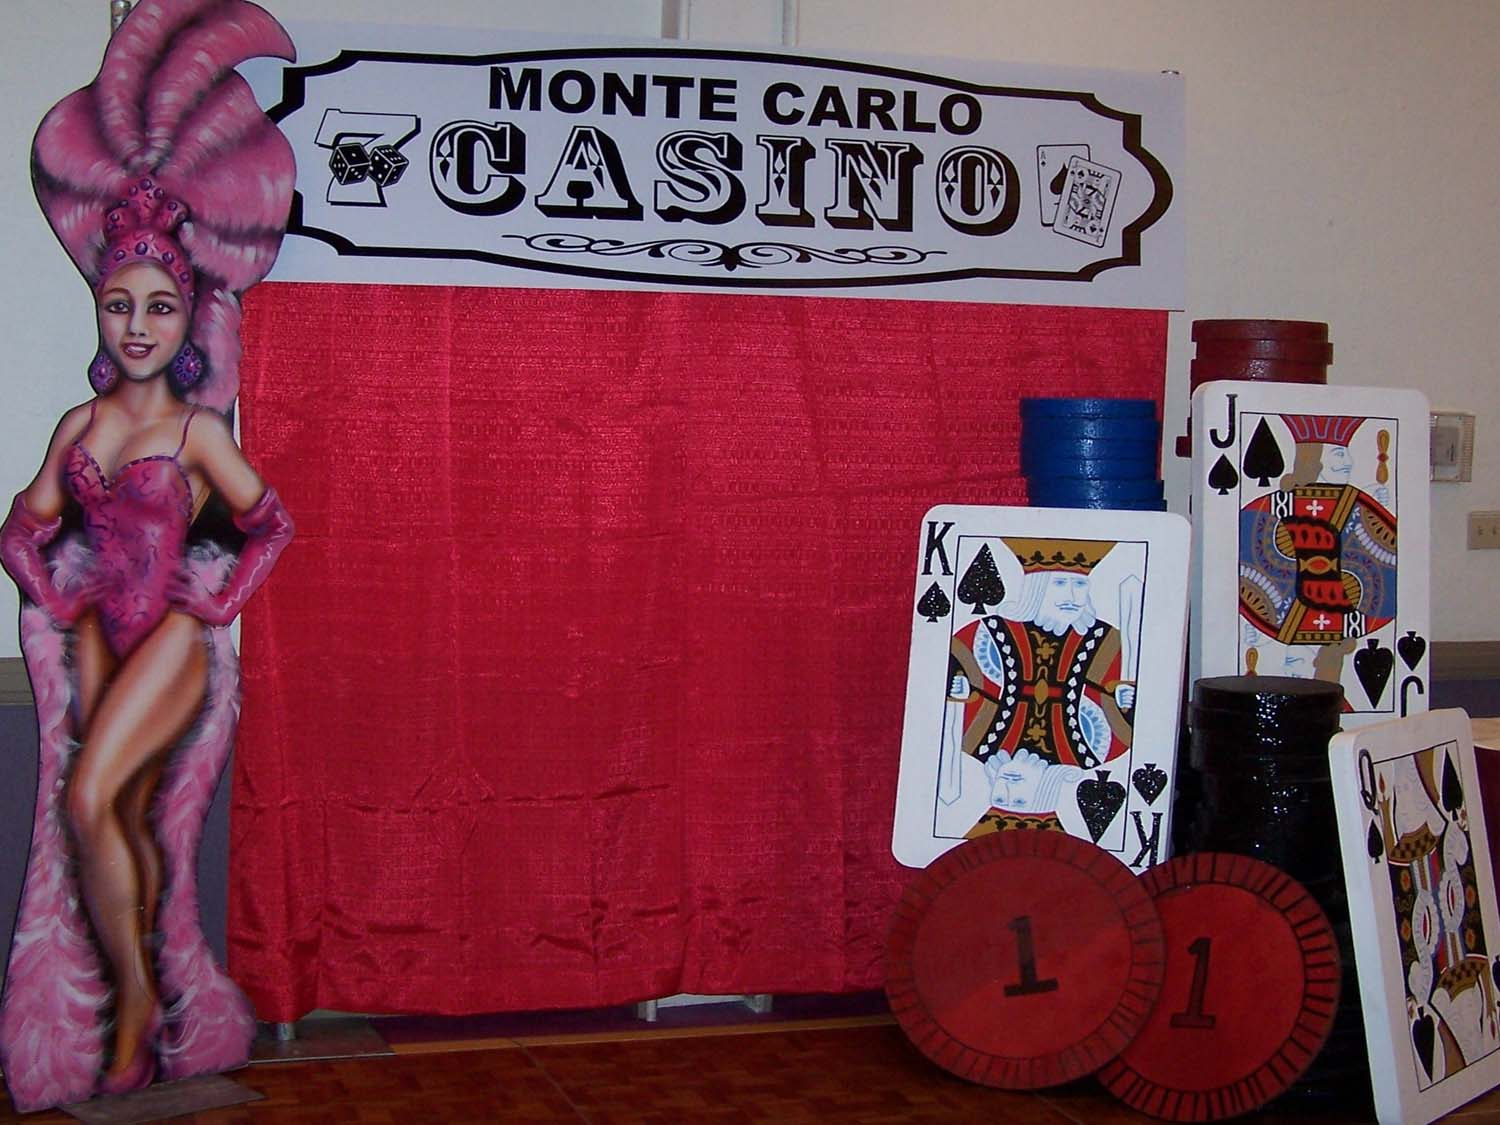 Casino Theme Party Decorations Ideas Part - 27: ... Casino Party Props · Casimno Party Decorations ...